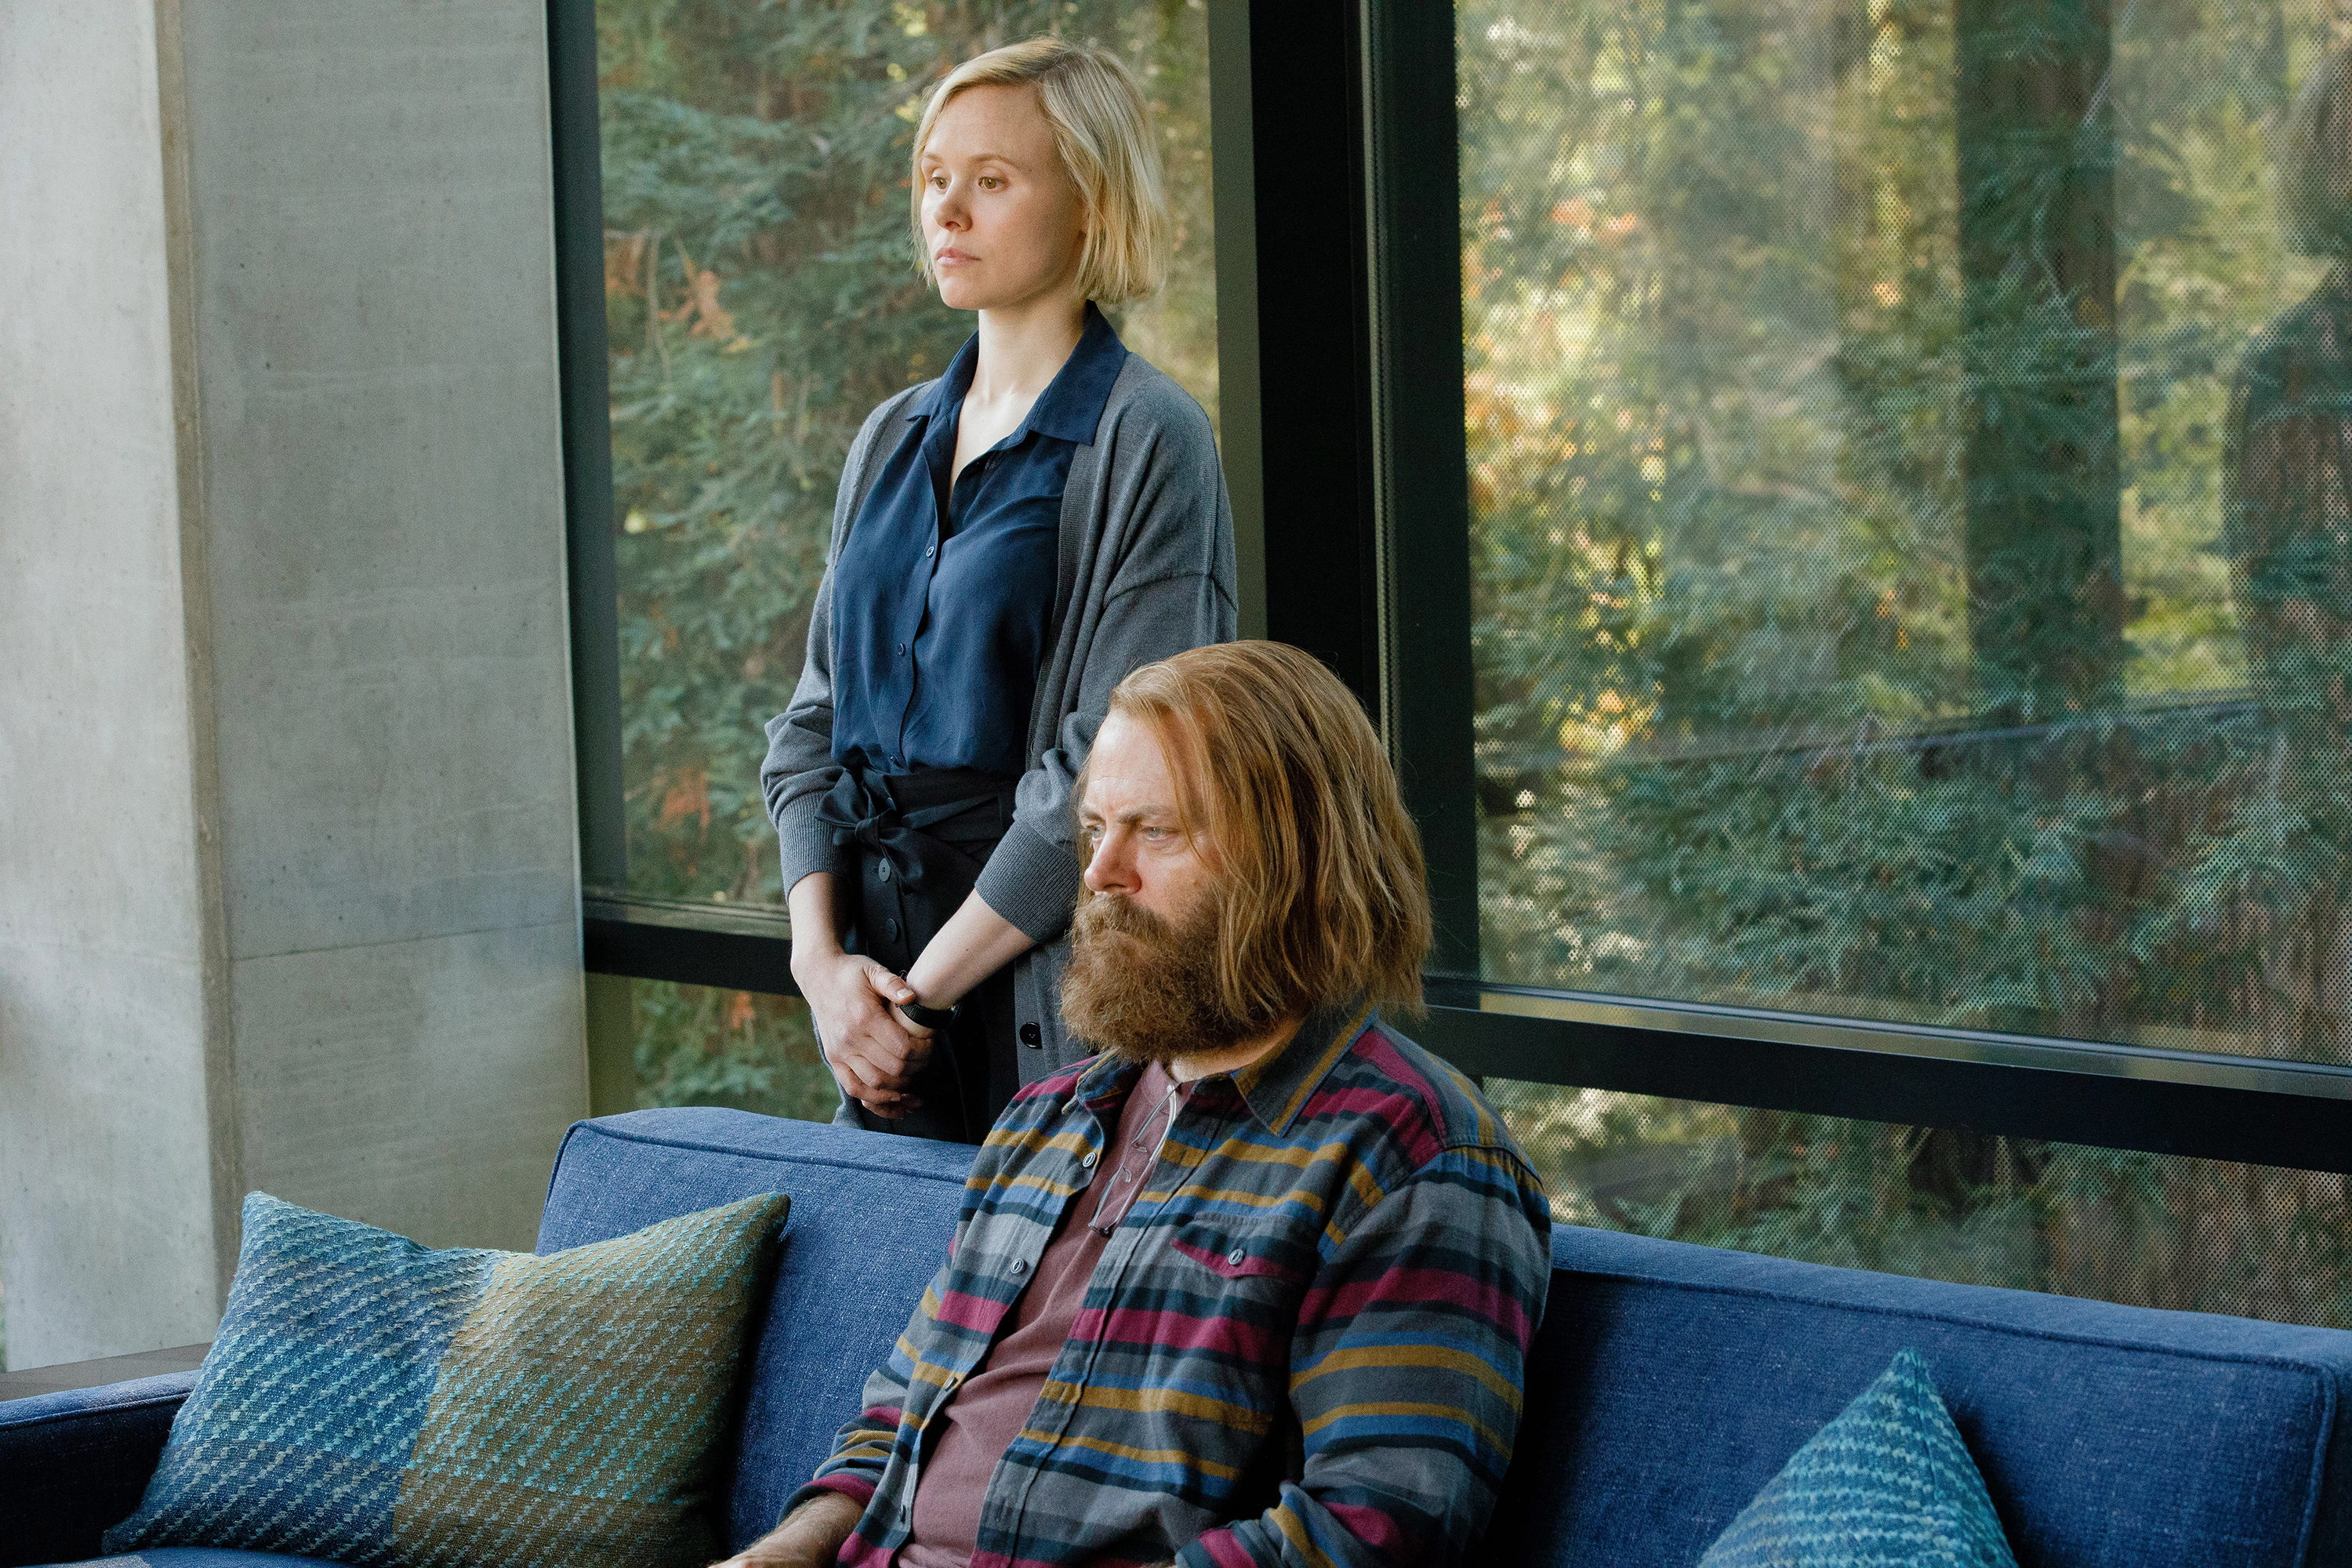 Alison Pill as Katie and Nick Offerman as Forest in 'Devs'